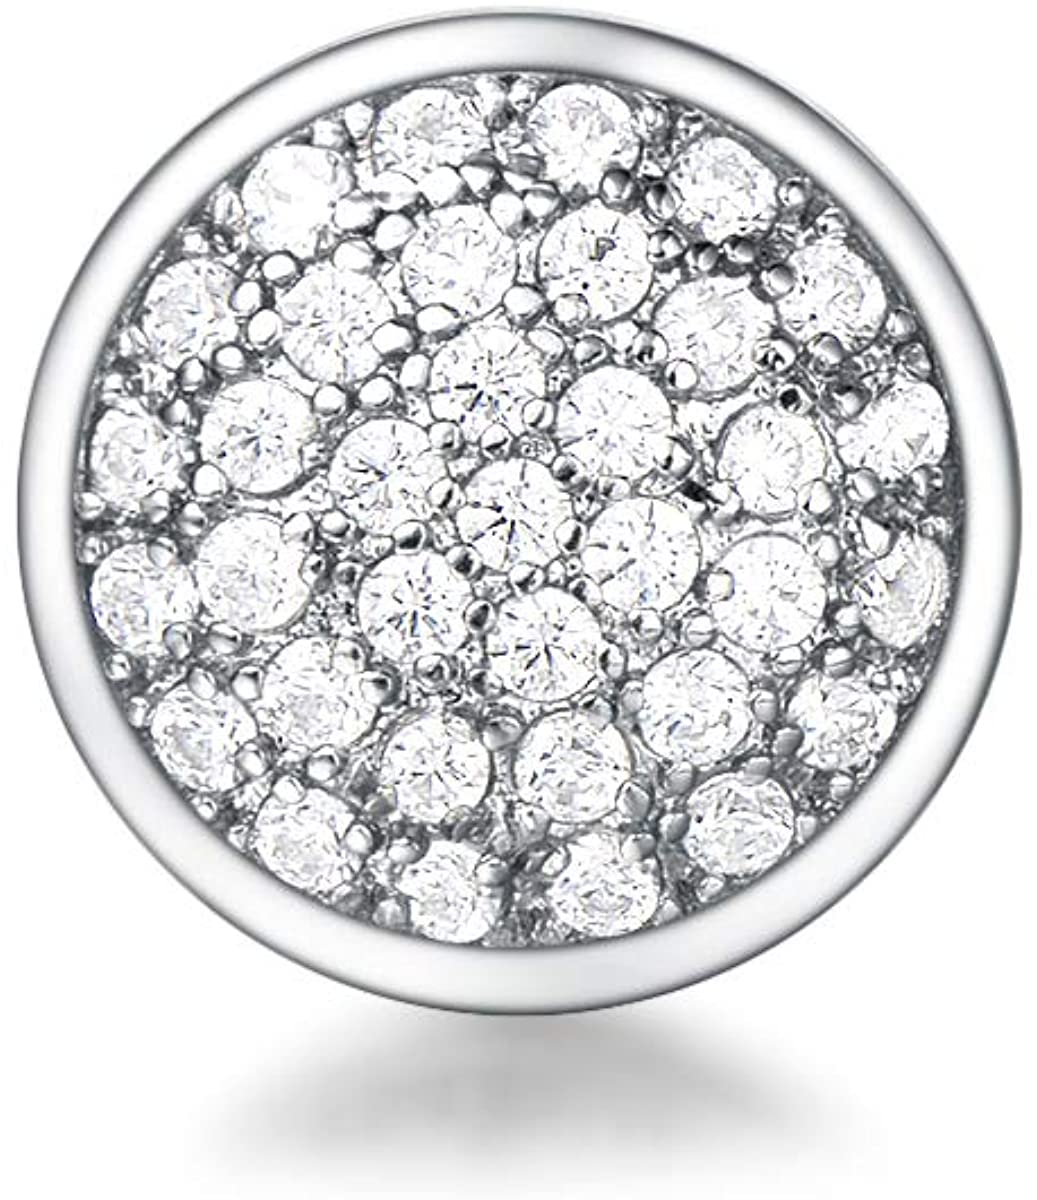 Quiges Women Mesh Bracelet Charm Round Cubic Zirconia Gemstones Clip made of 925 Sterling Silver